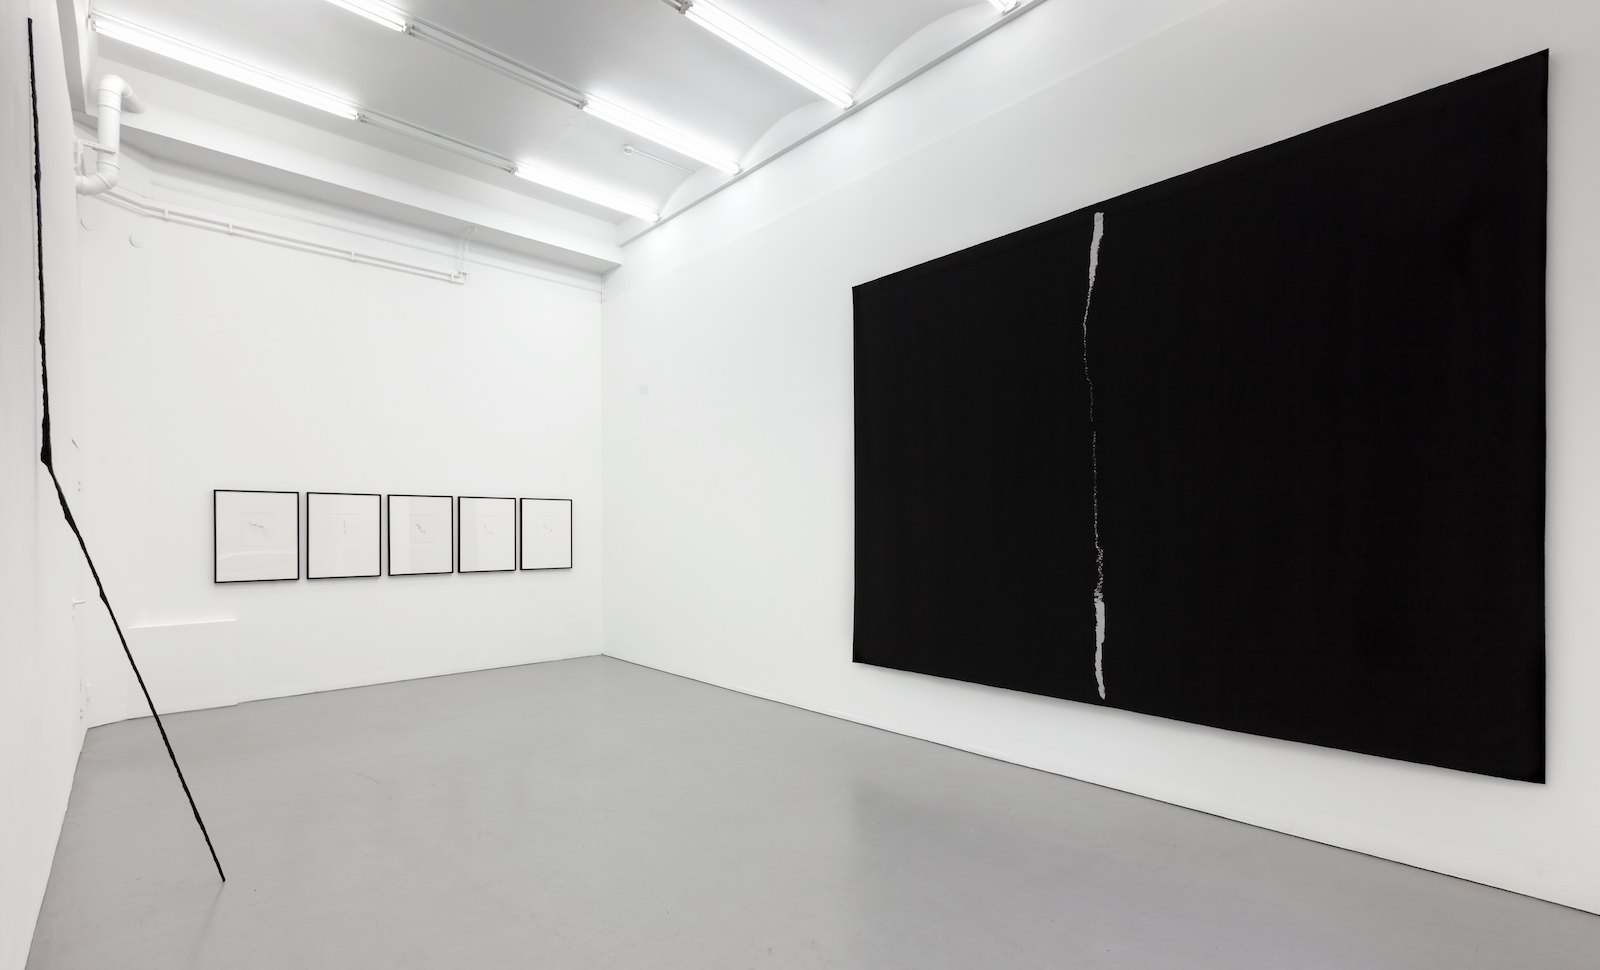 Installation view, Jan Groth, Selected works 1990-2012, Galleri Riis, Stockholm, 2012